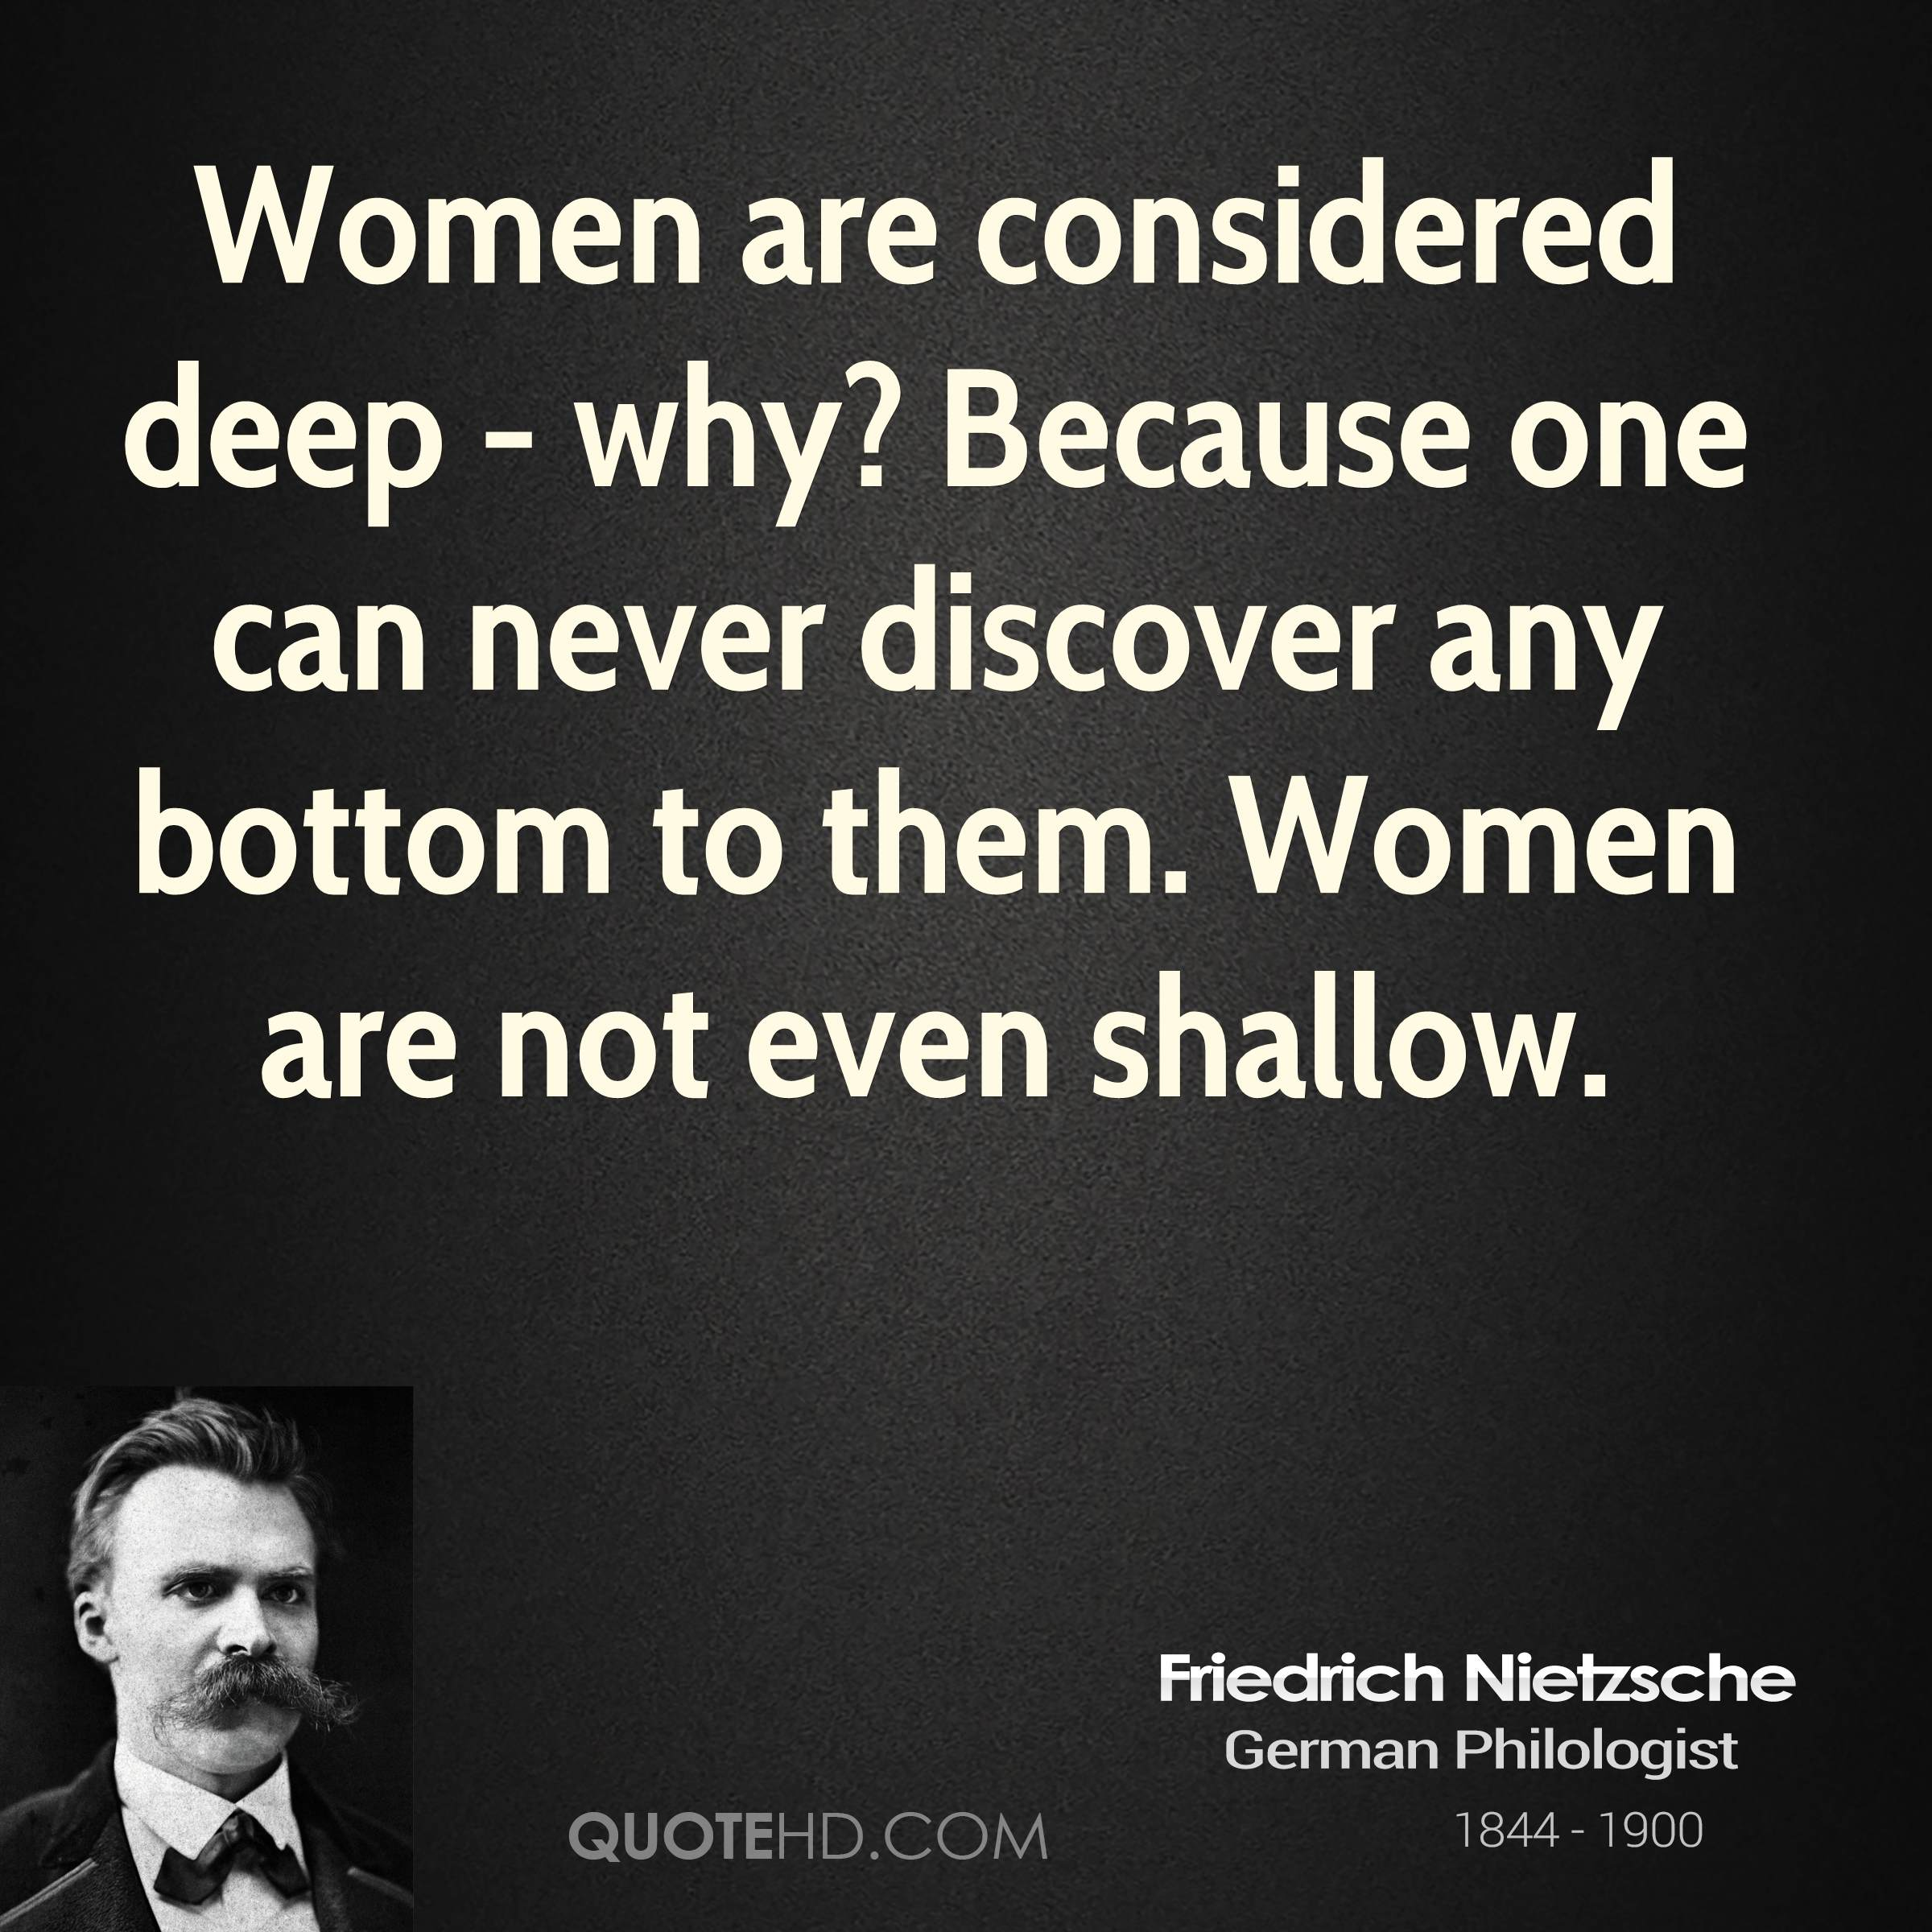 nietzsches views on women Nietzsche essays essay on nietzsche  rather the god had a functional role from his point of view there is no doubt that,  euripides support of women's rights.